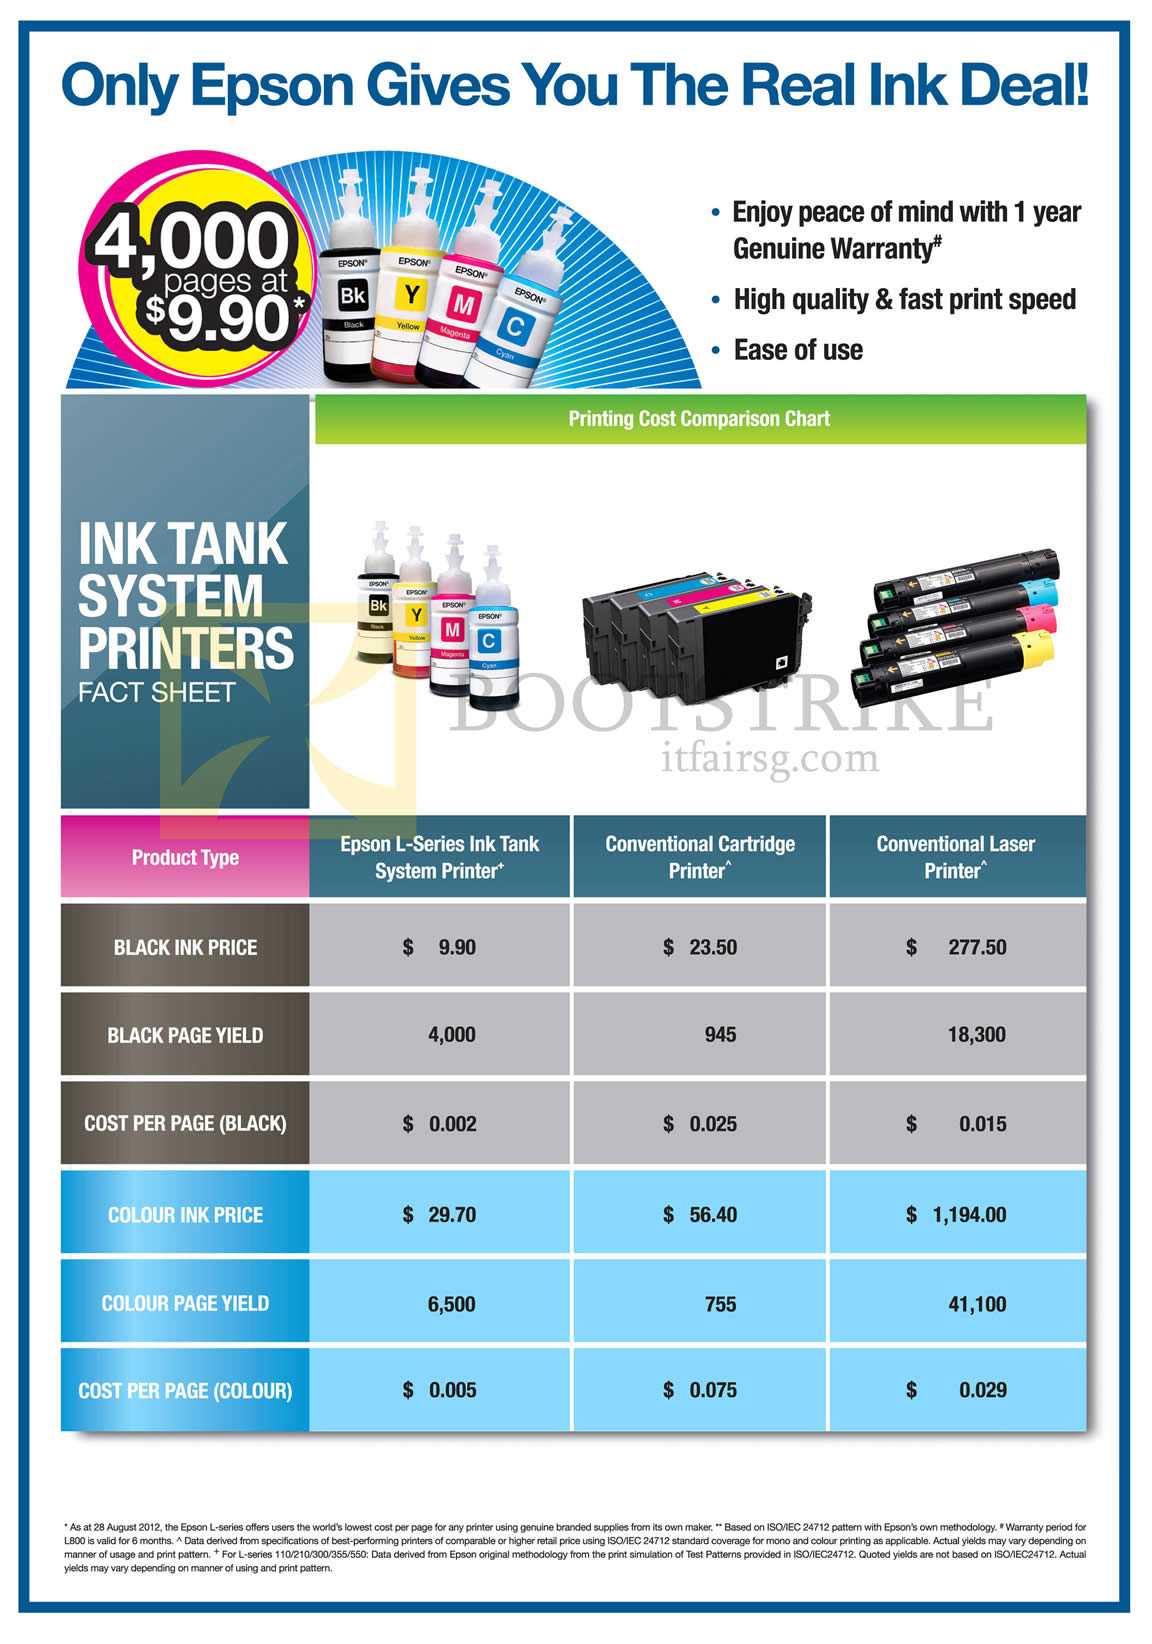 COMEX 2013 price list image brochure of Epson Printers Ink Tank System Comparison Table